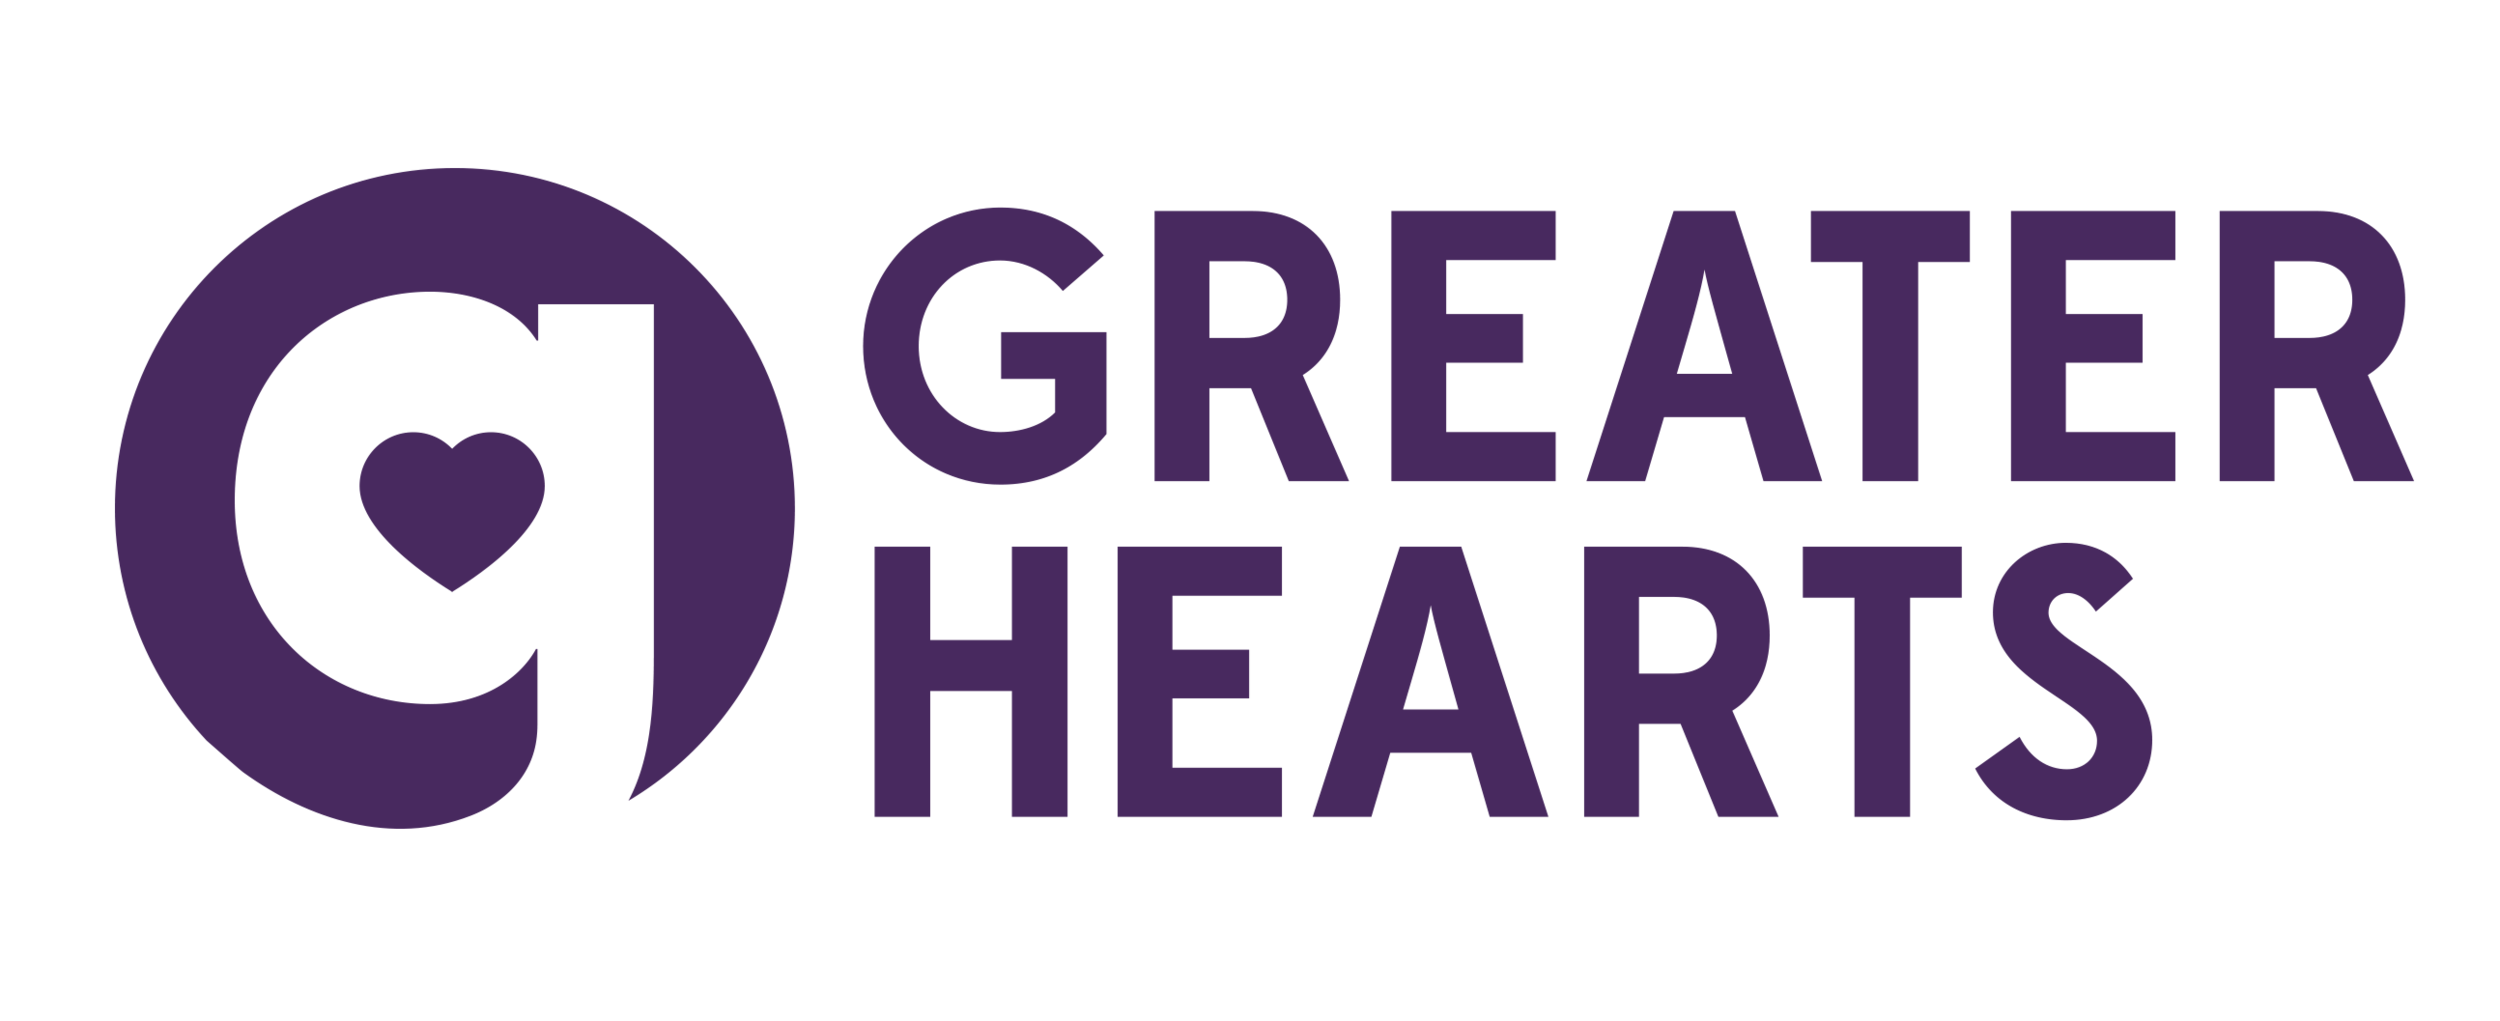 GreaterHearts_image.png